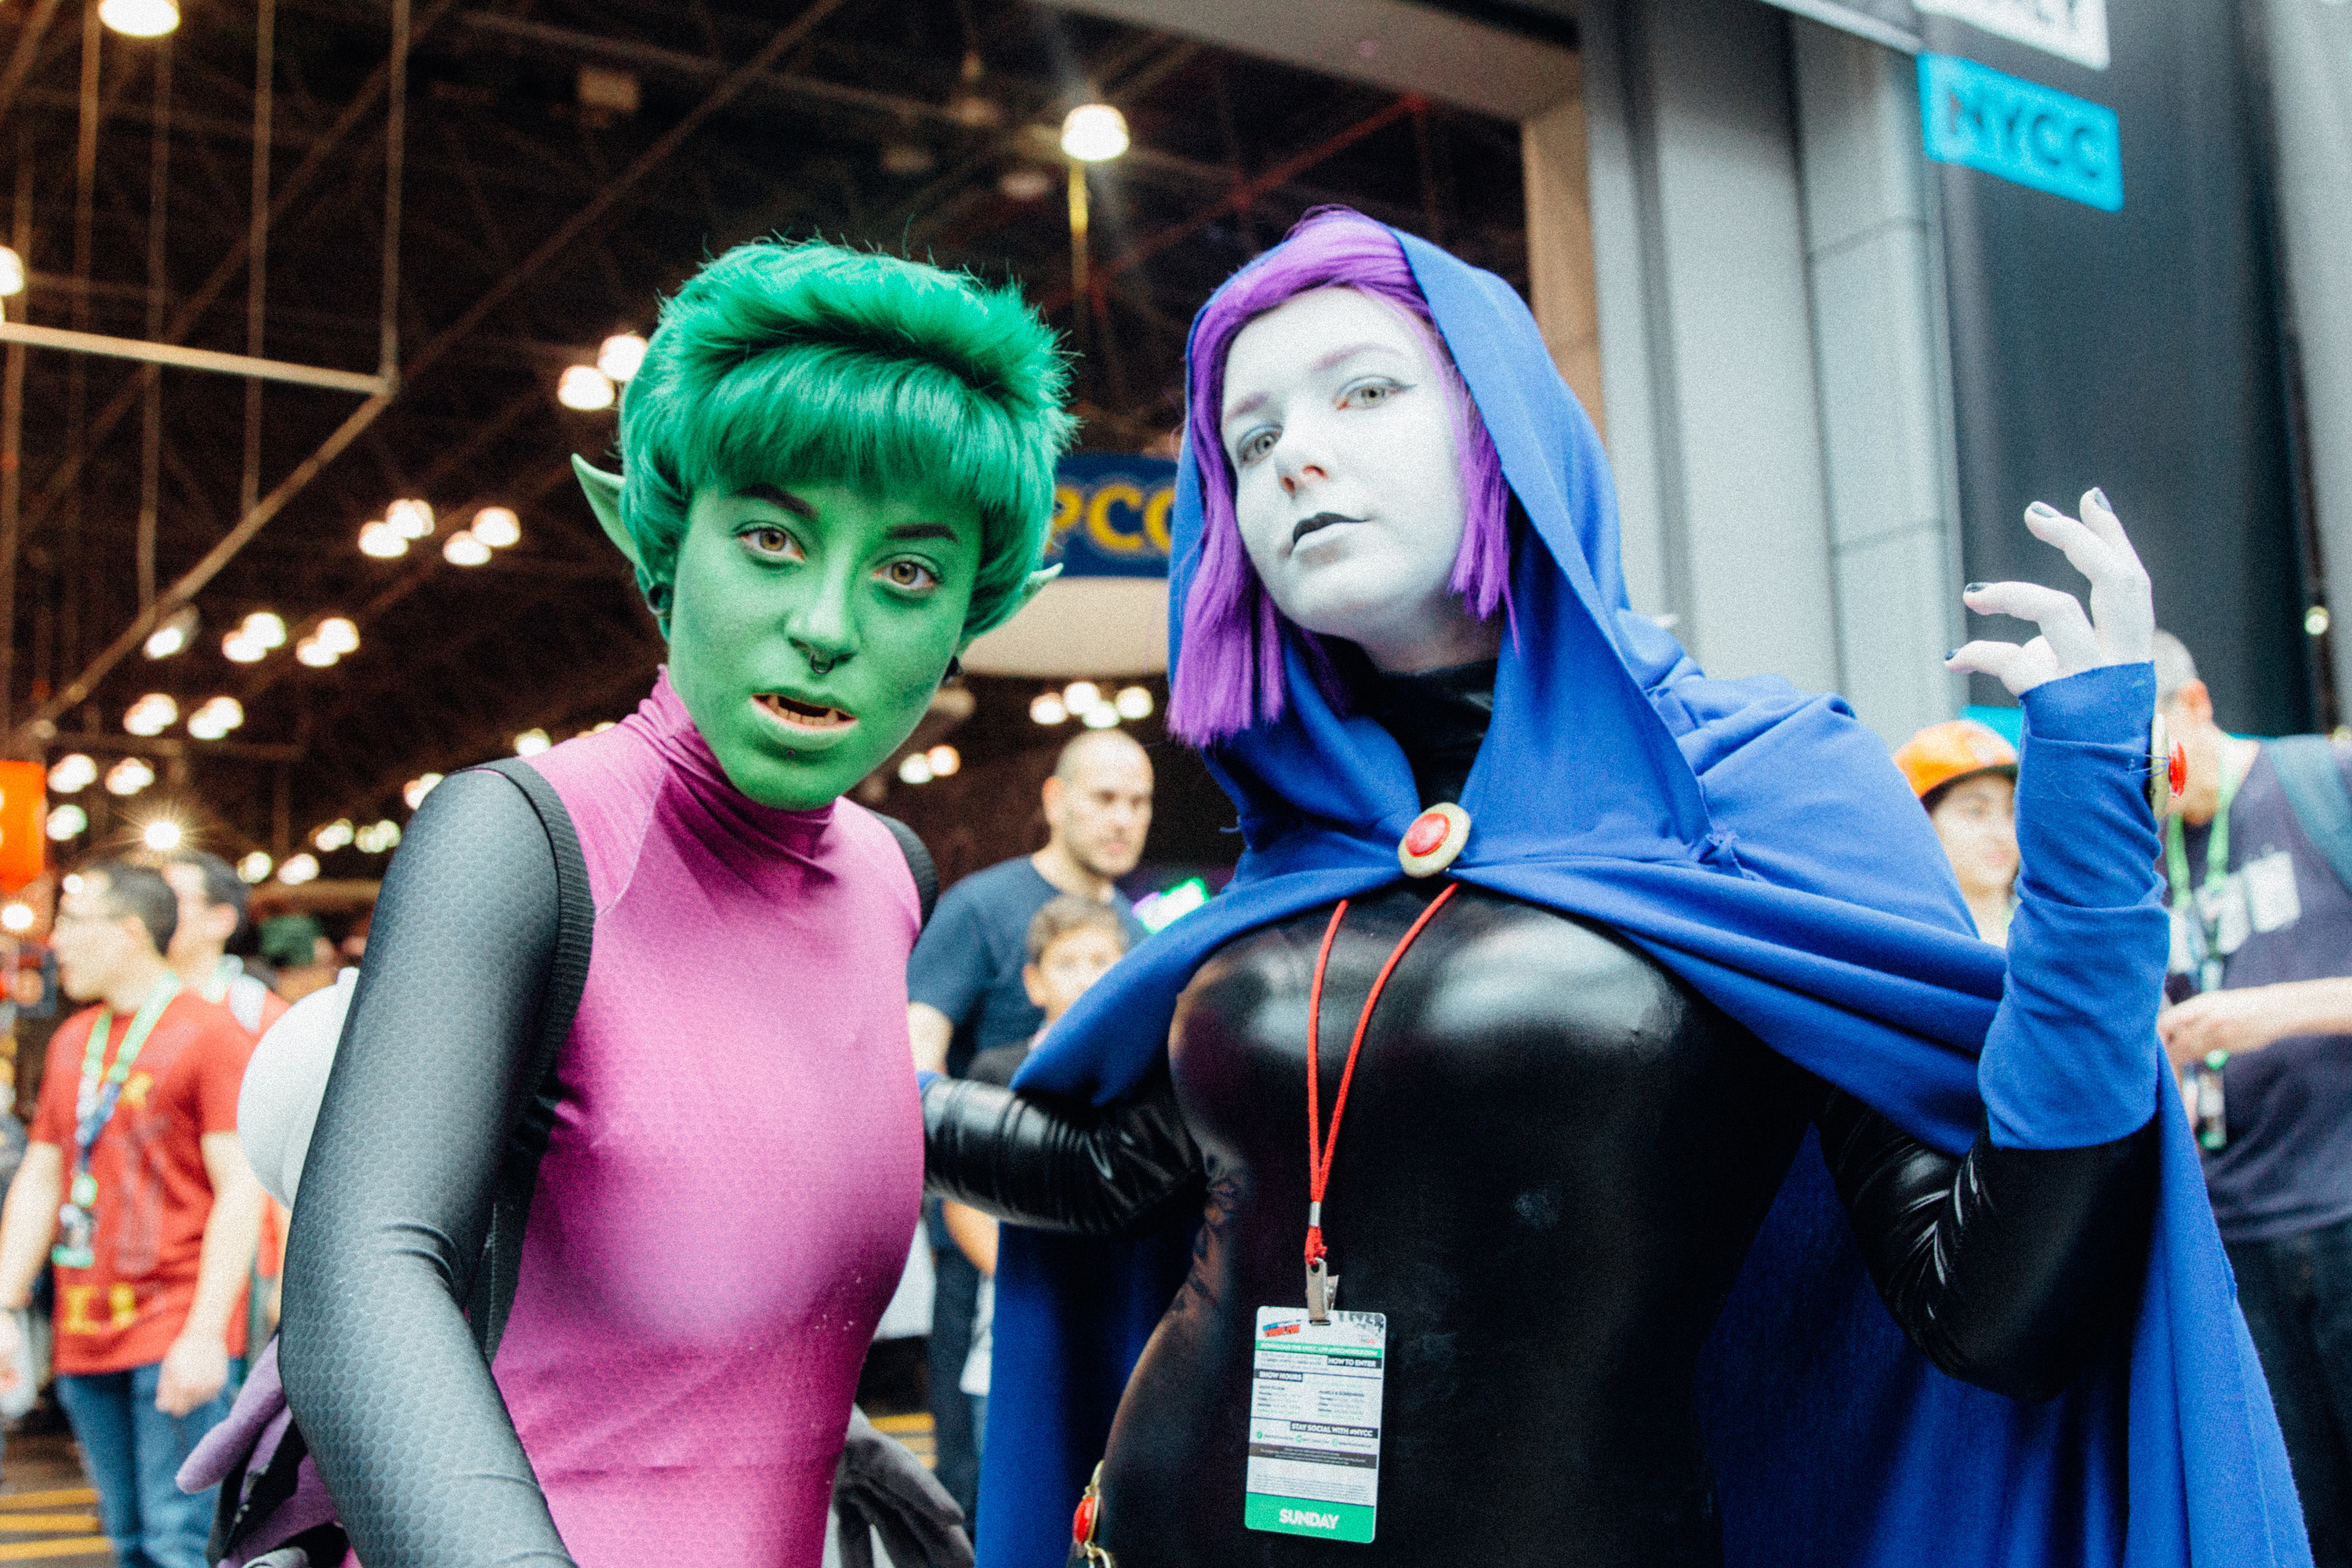 See the epic looks from New York Comic Con 2018